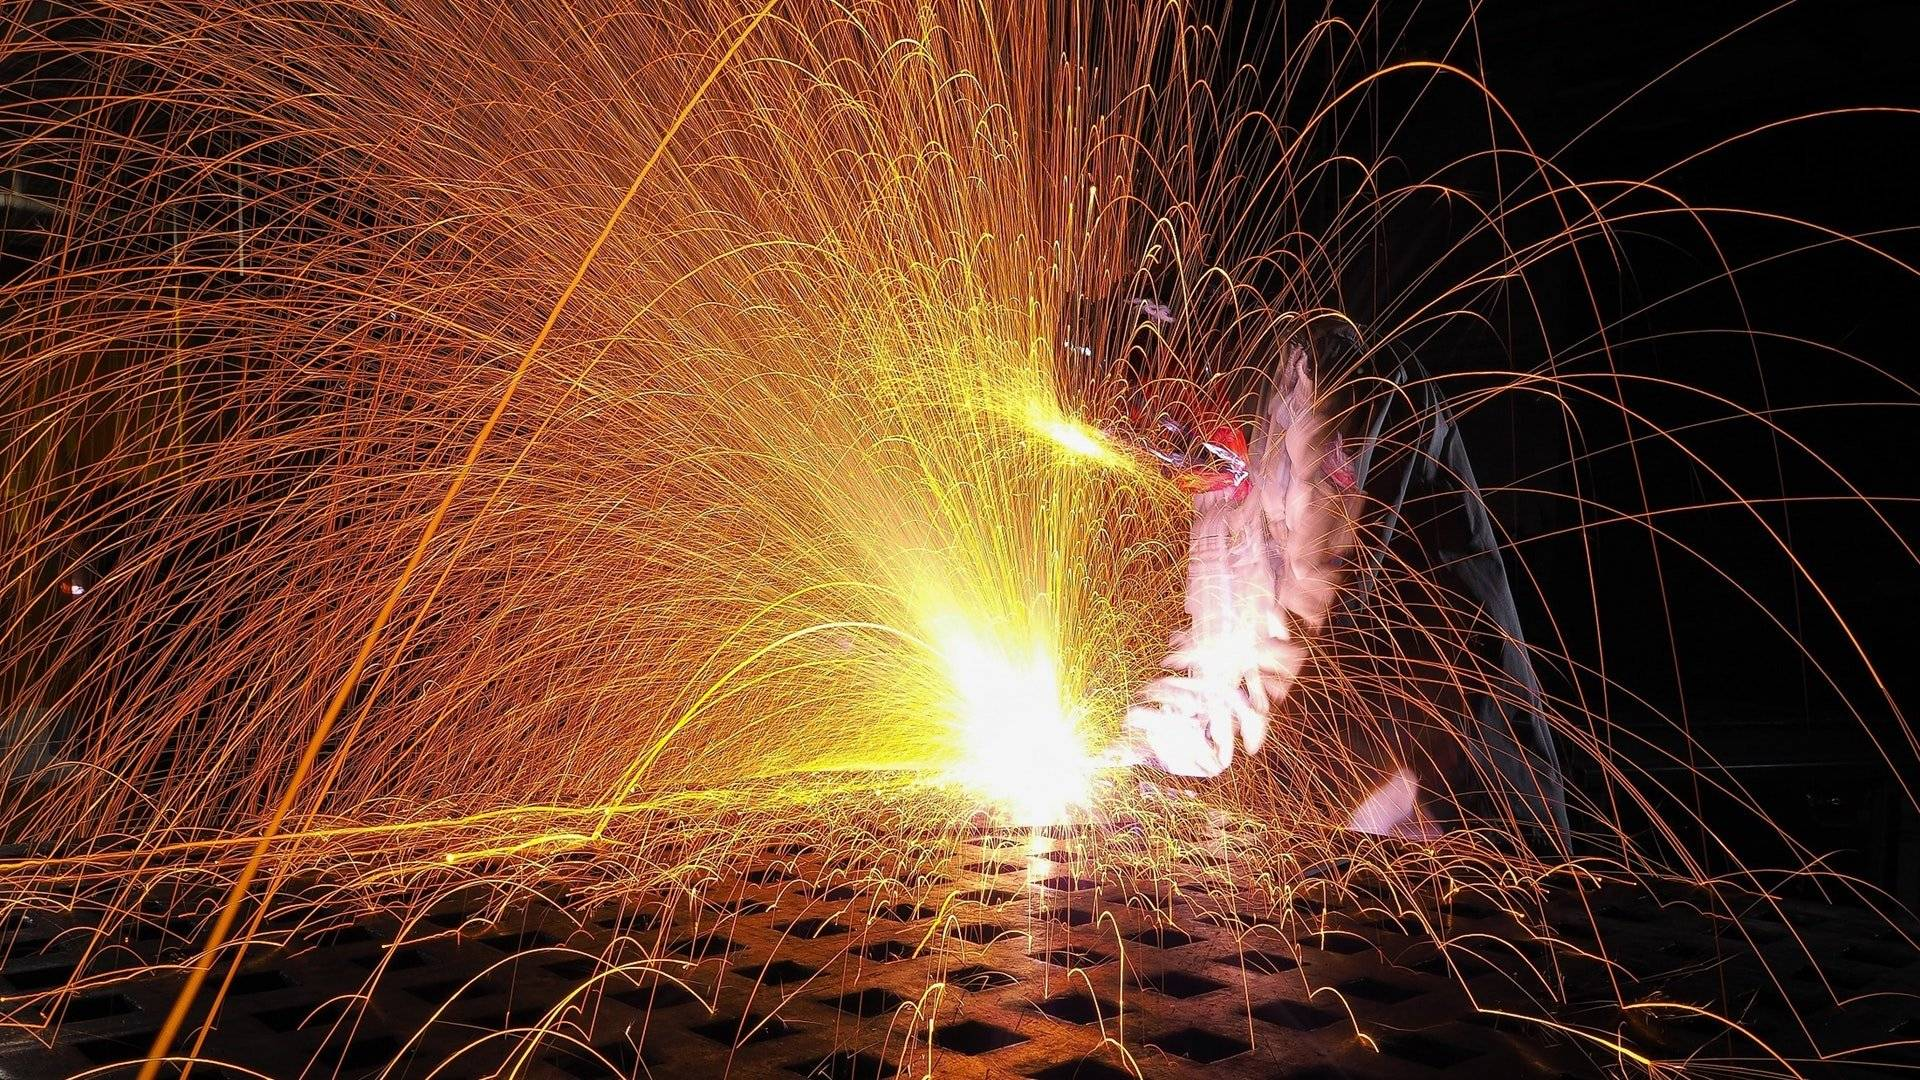 shower of sparks from person welding in welding mask